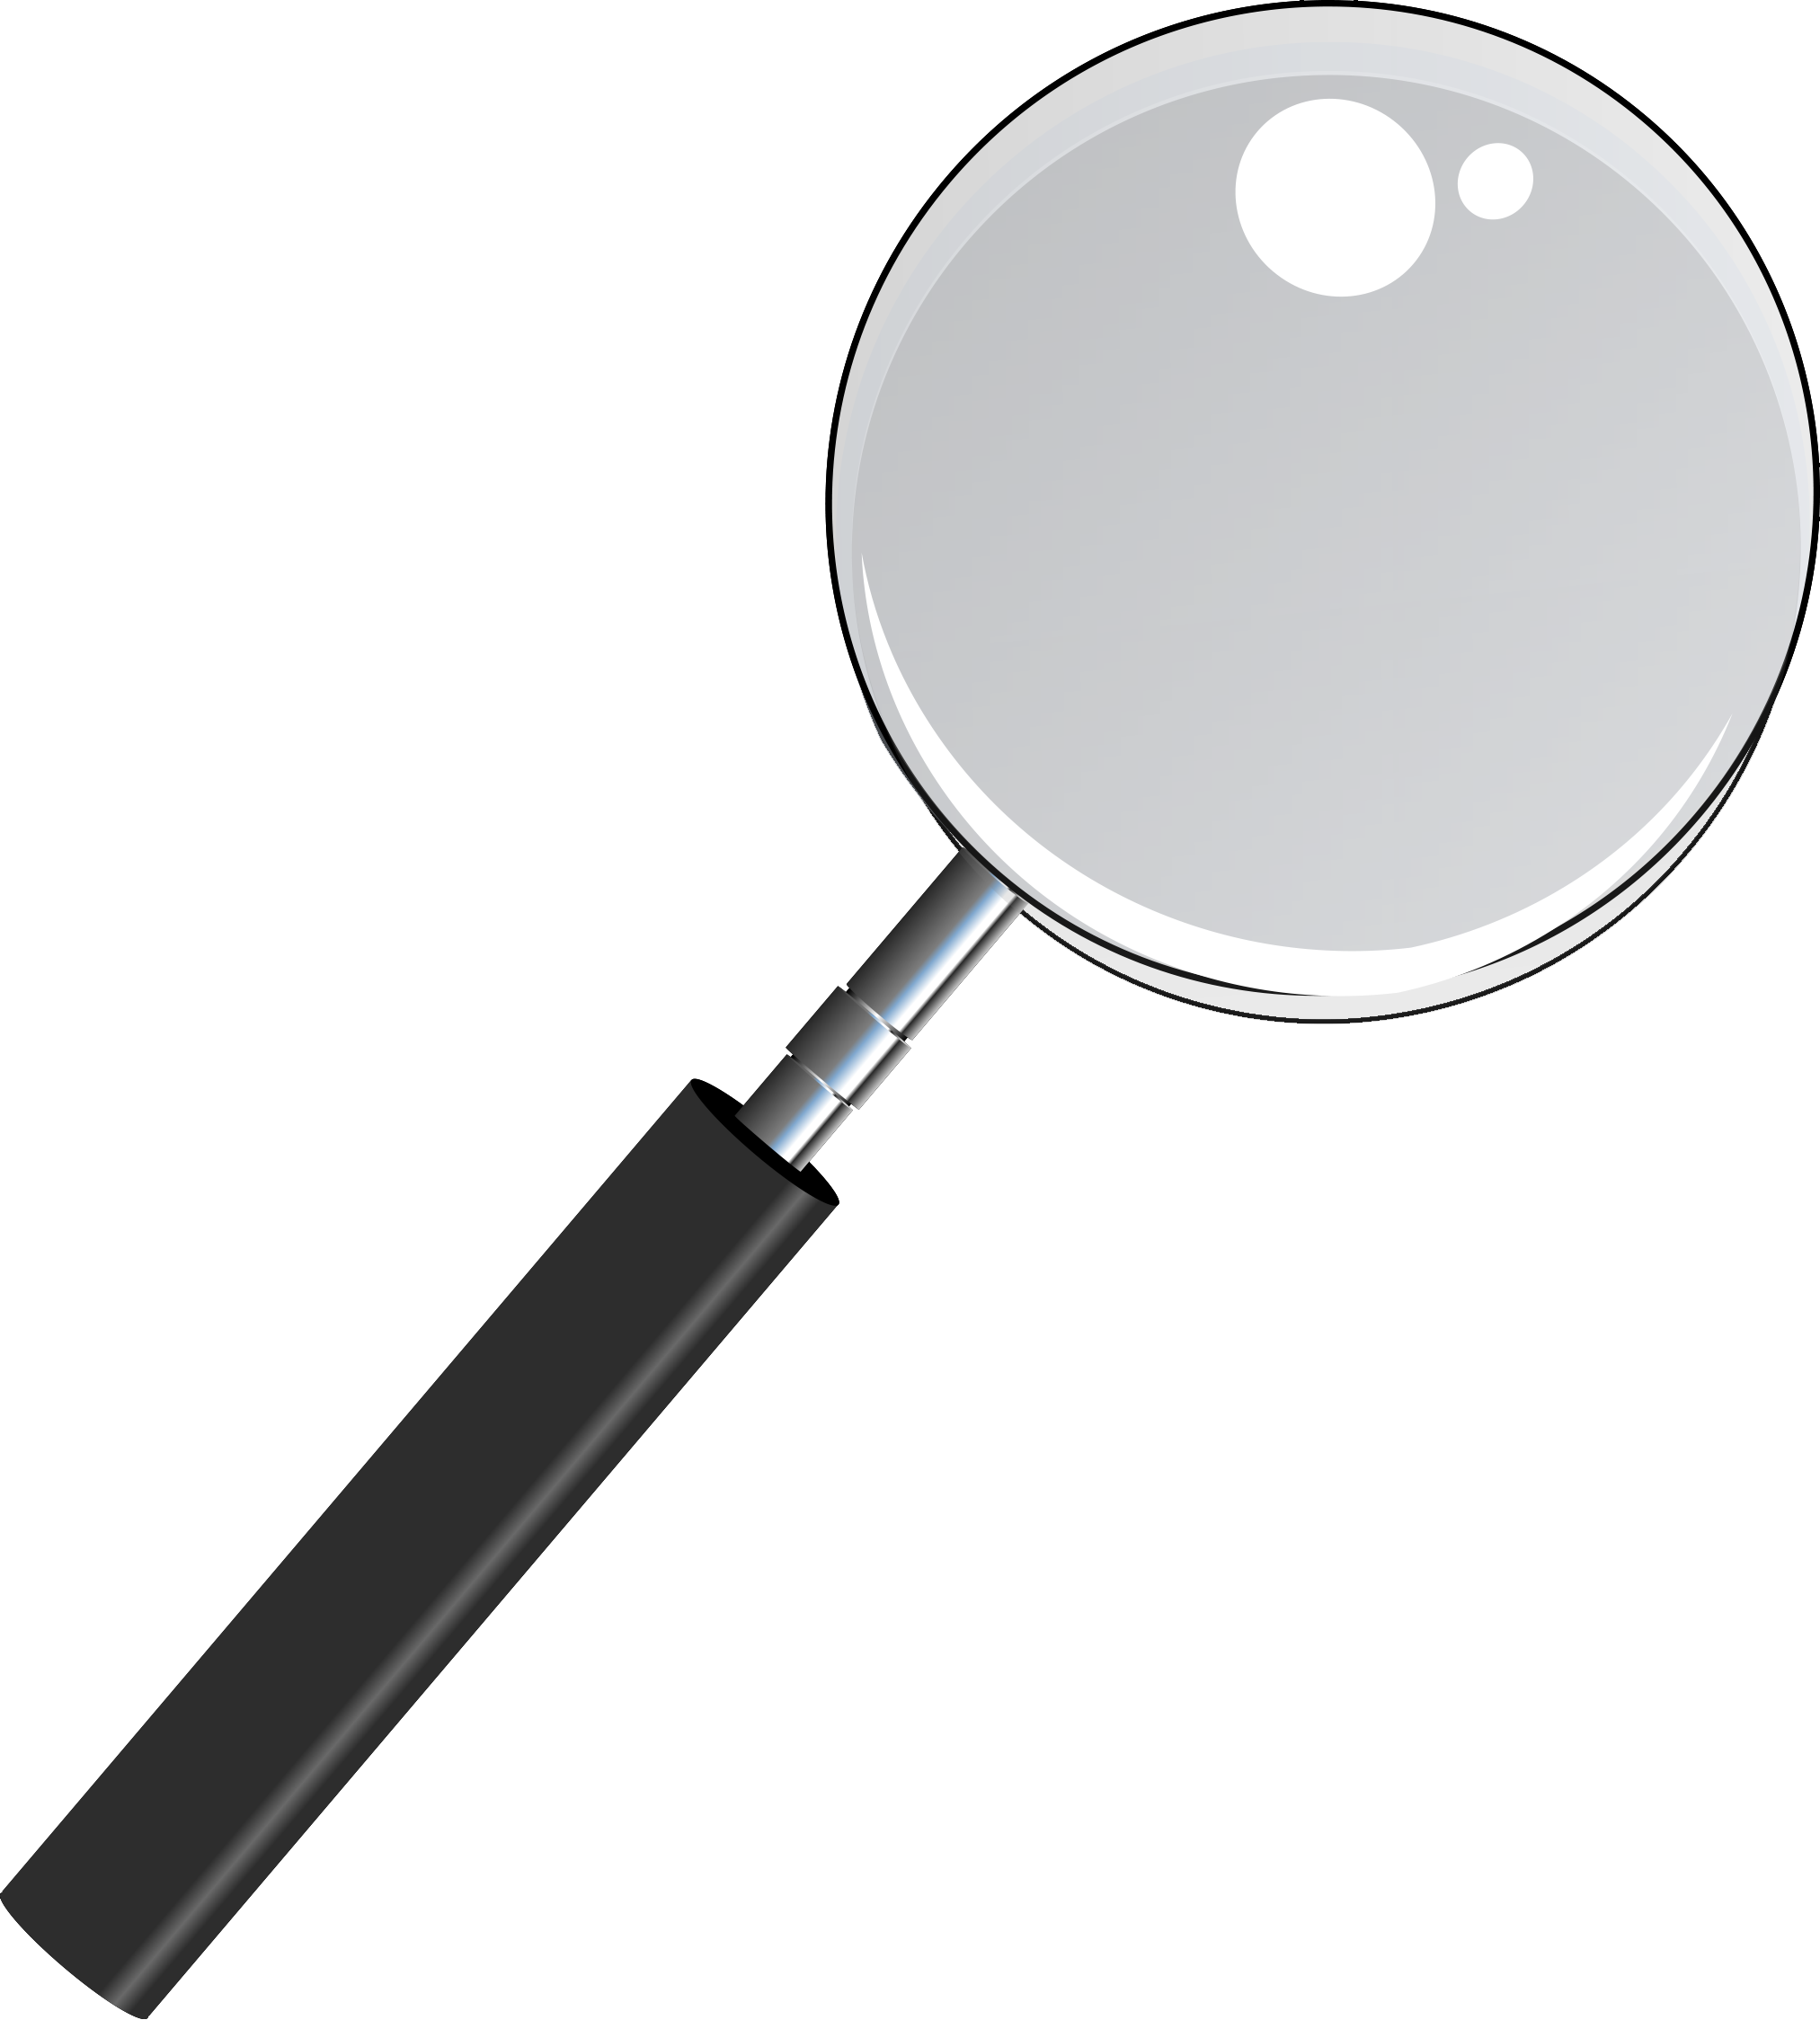 Evidence clipart magnifying glass. Wisc online oer